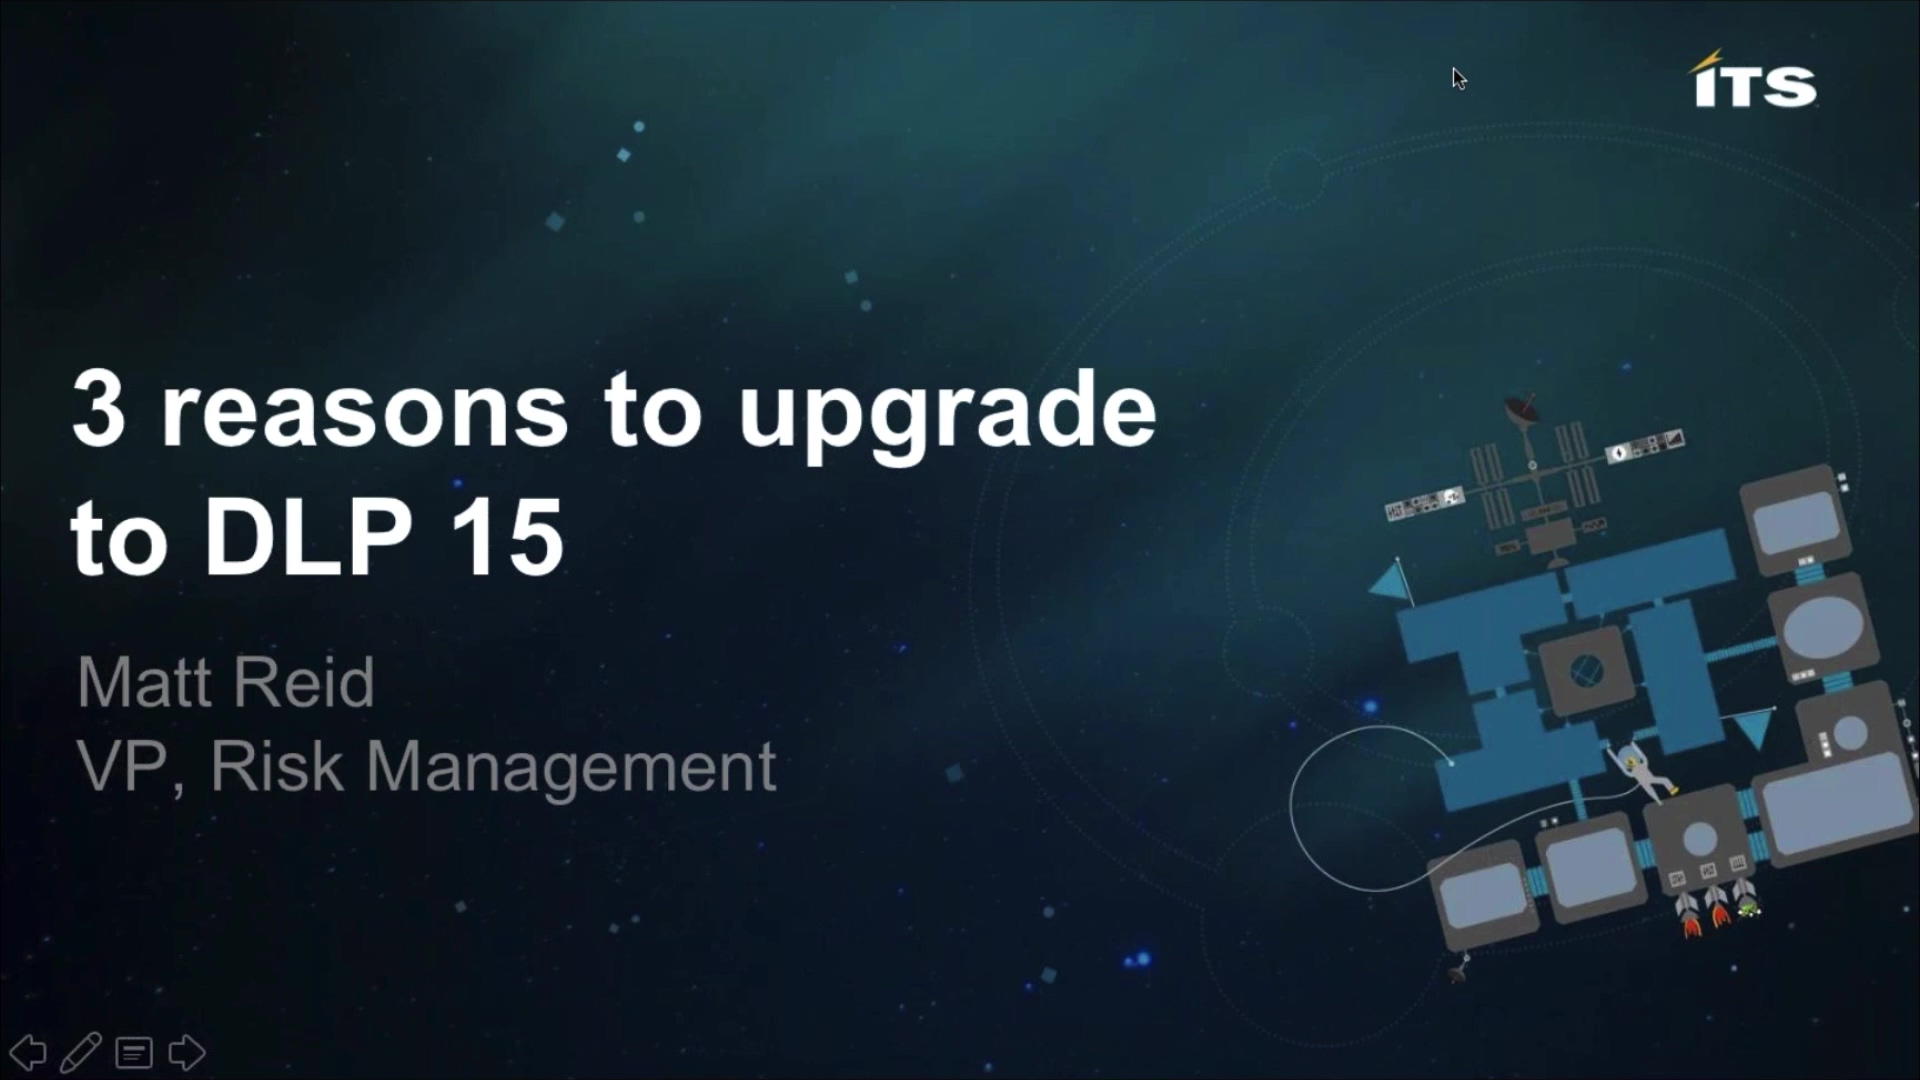 3 Reasons Why Youll Want to Upgrade to Symantec DLP 15 Immediately